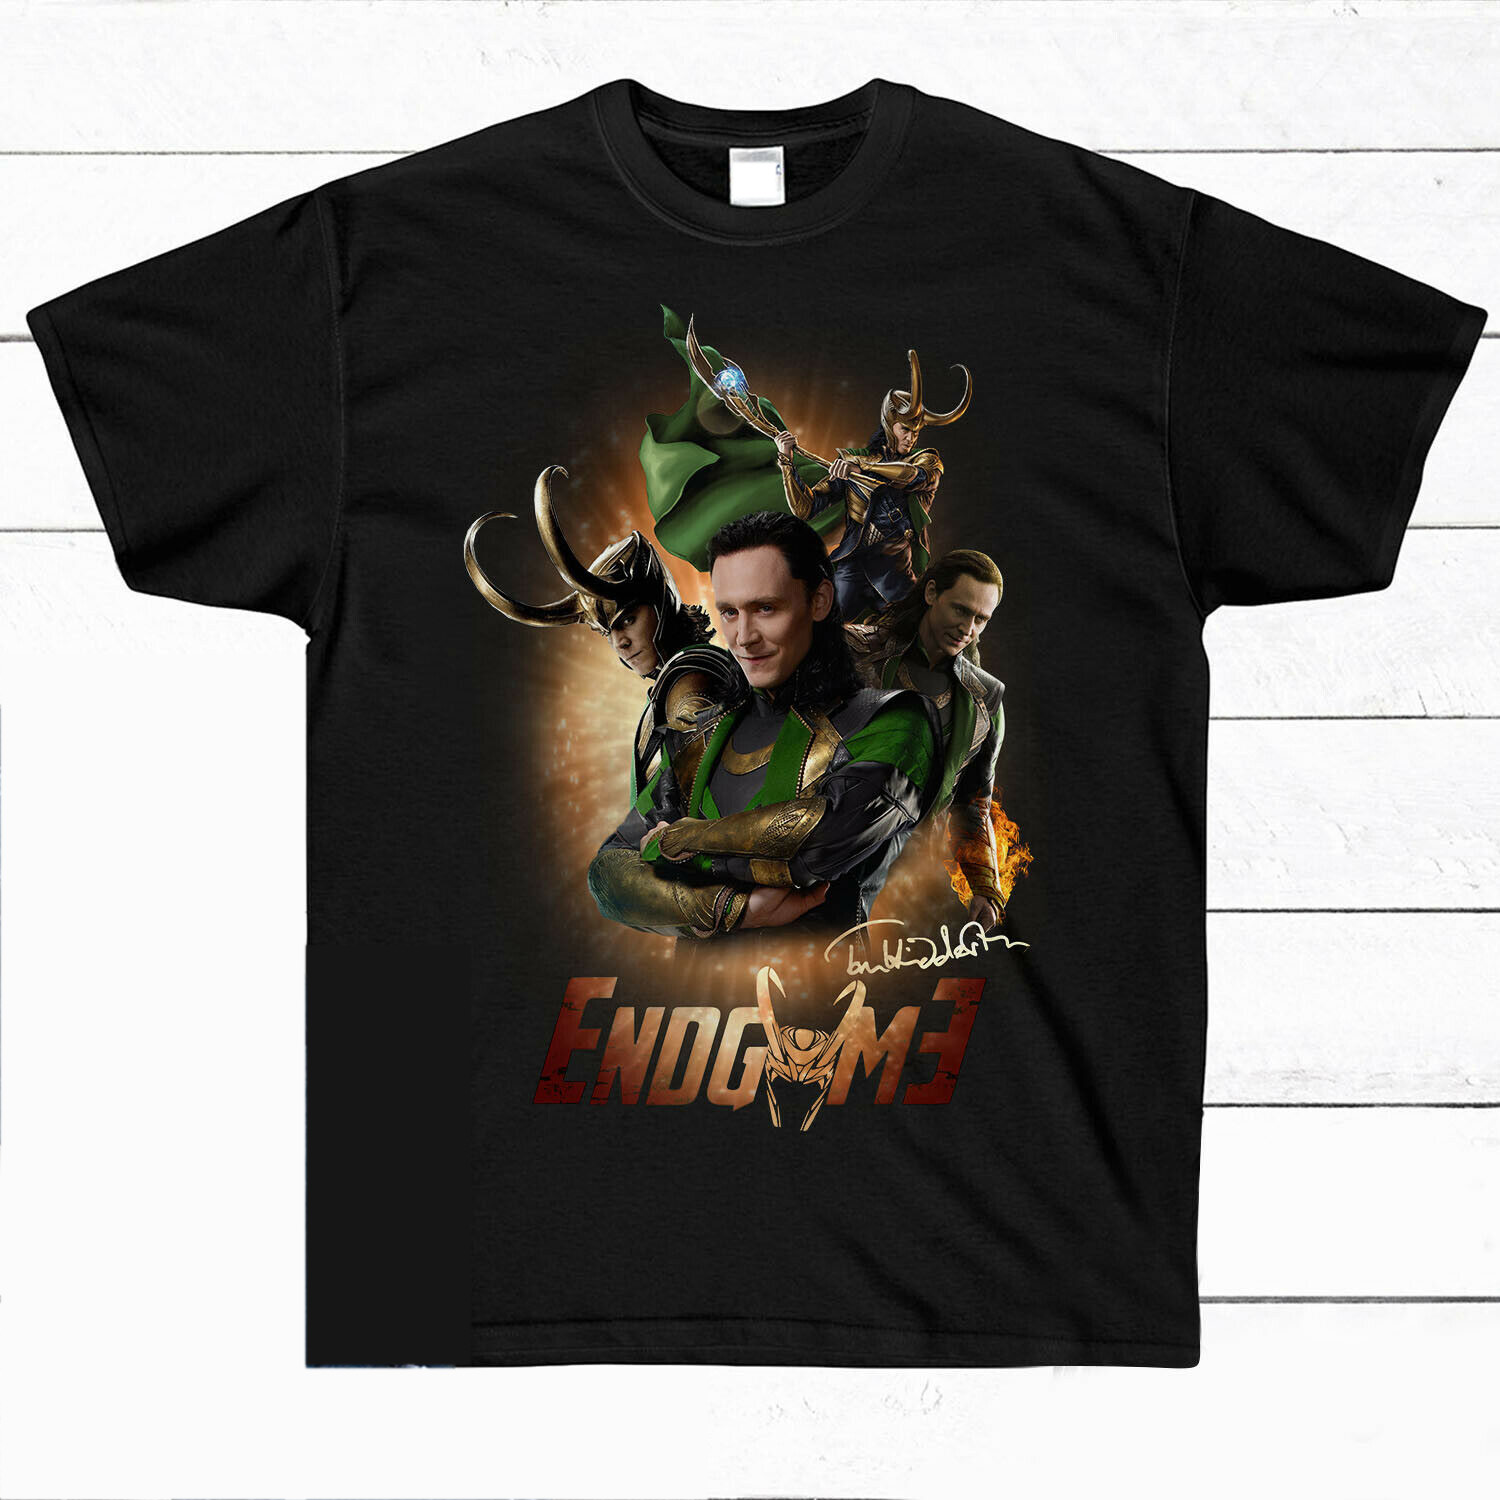 Avengers Endgame Loki Tom Hiddleston Signature Shirt Black ...